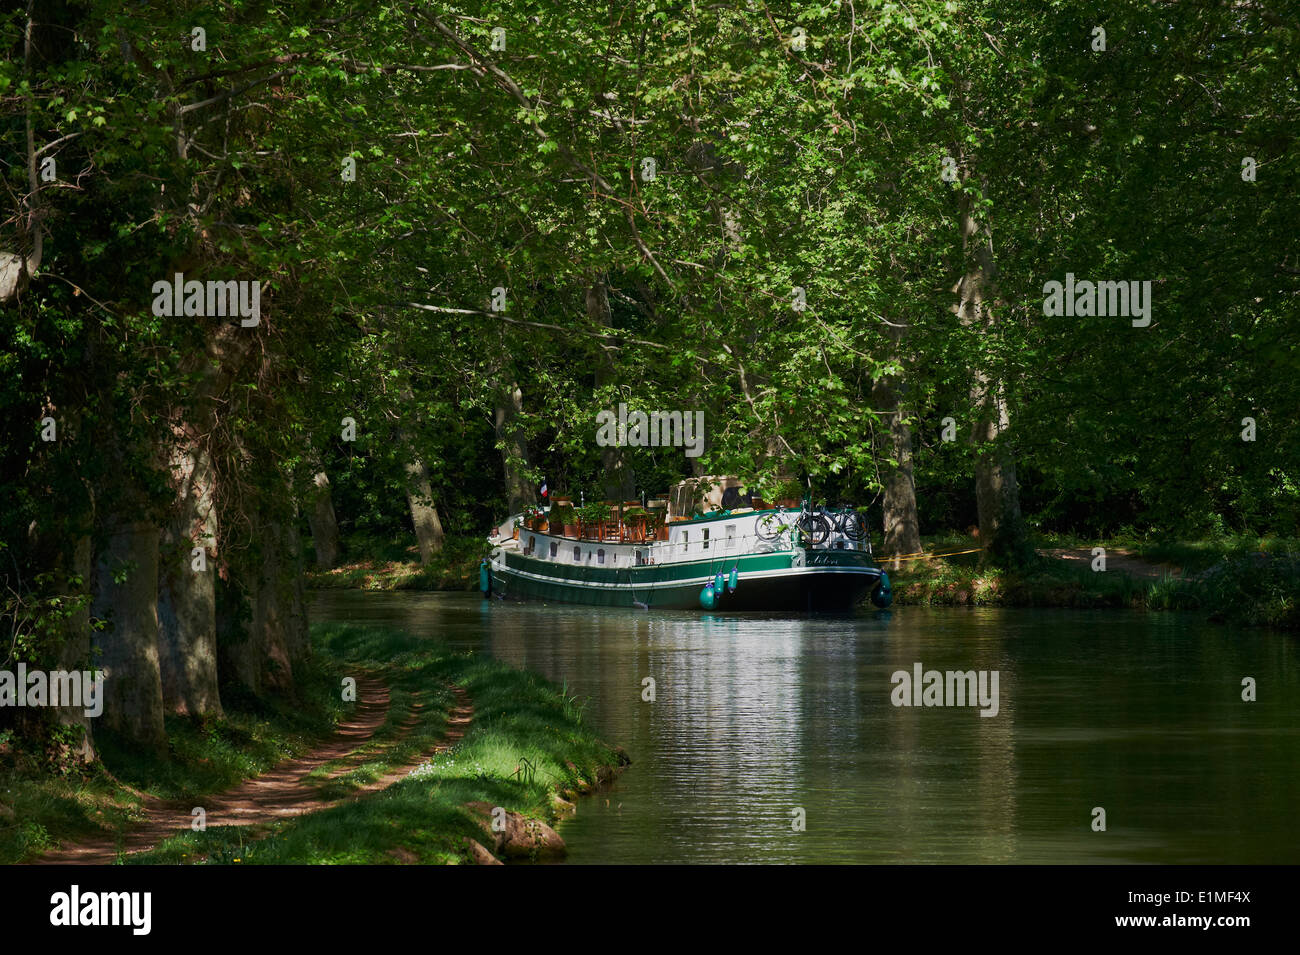 France, Languedoc-Roussillon, Aude (11), navigation on the Canal du Midi - Stock Image